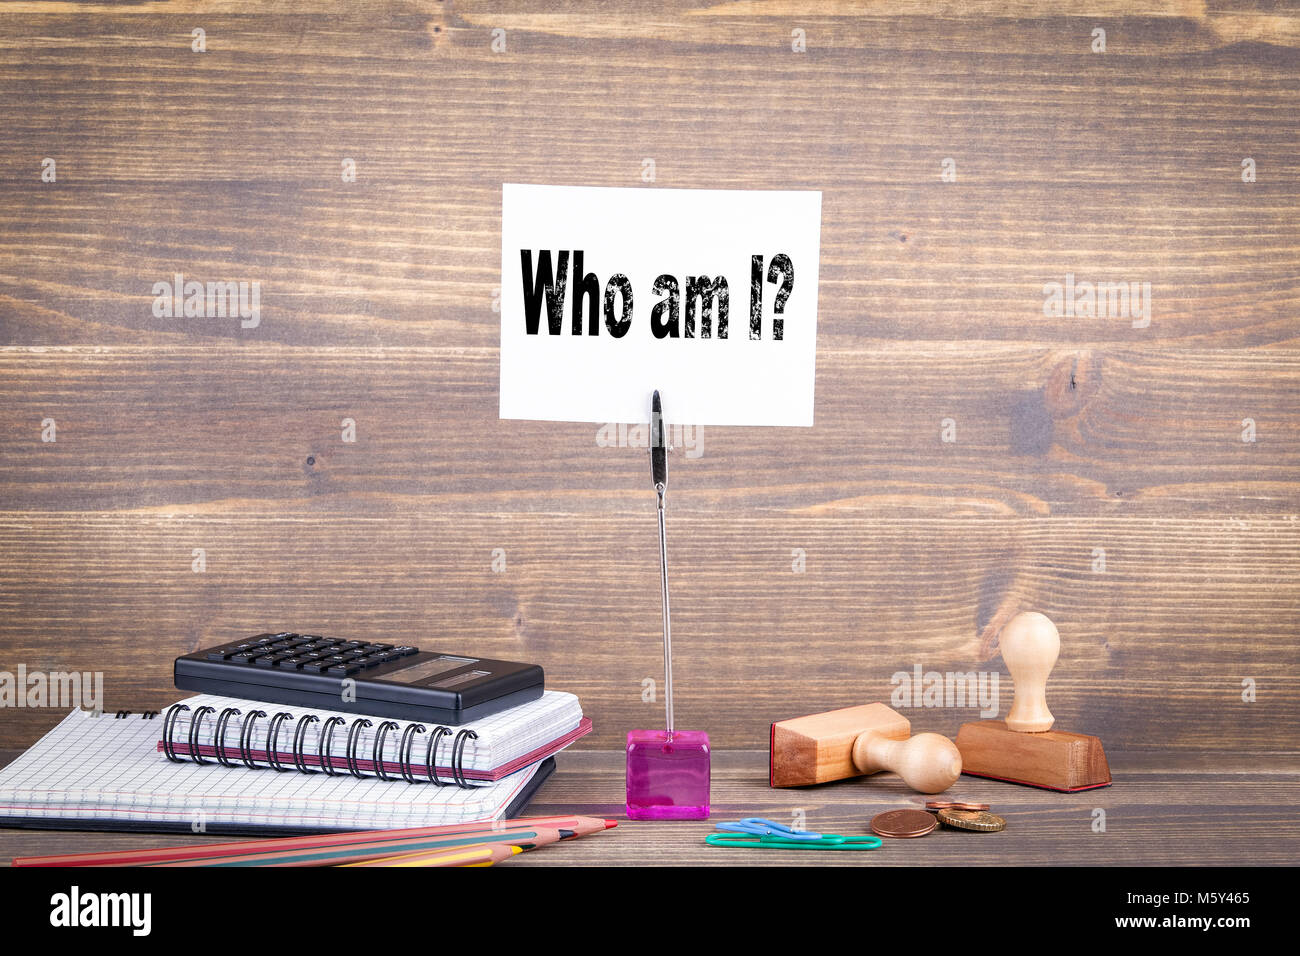 Who am I. Wooden table with stationery - Stock Image